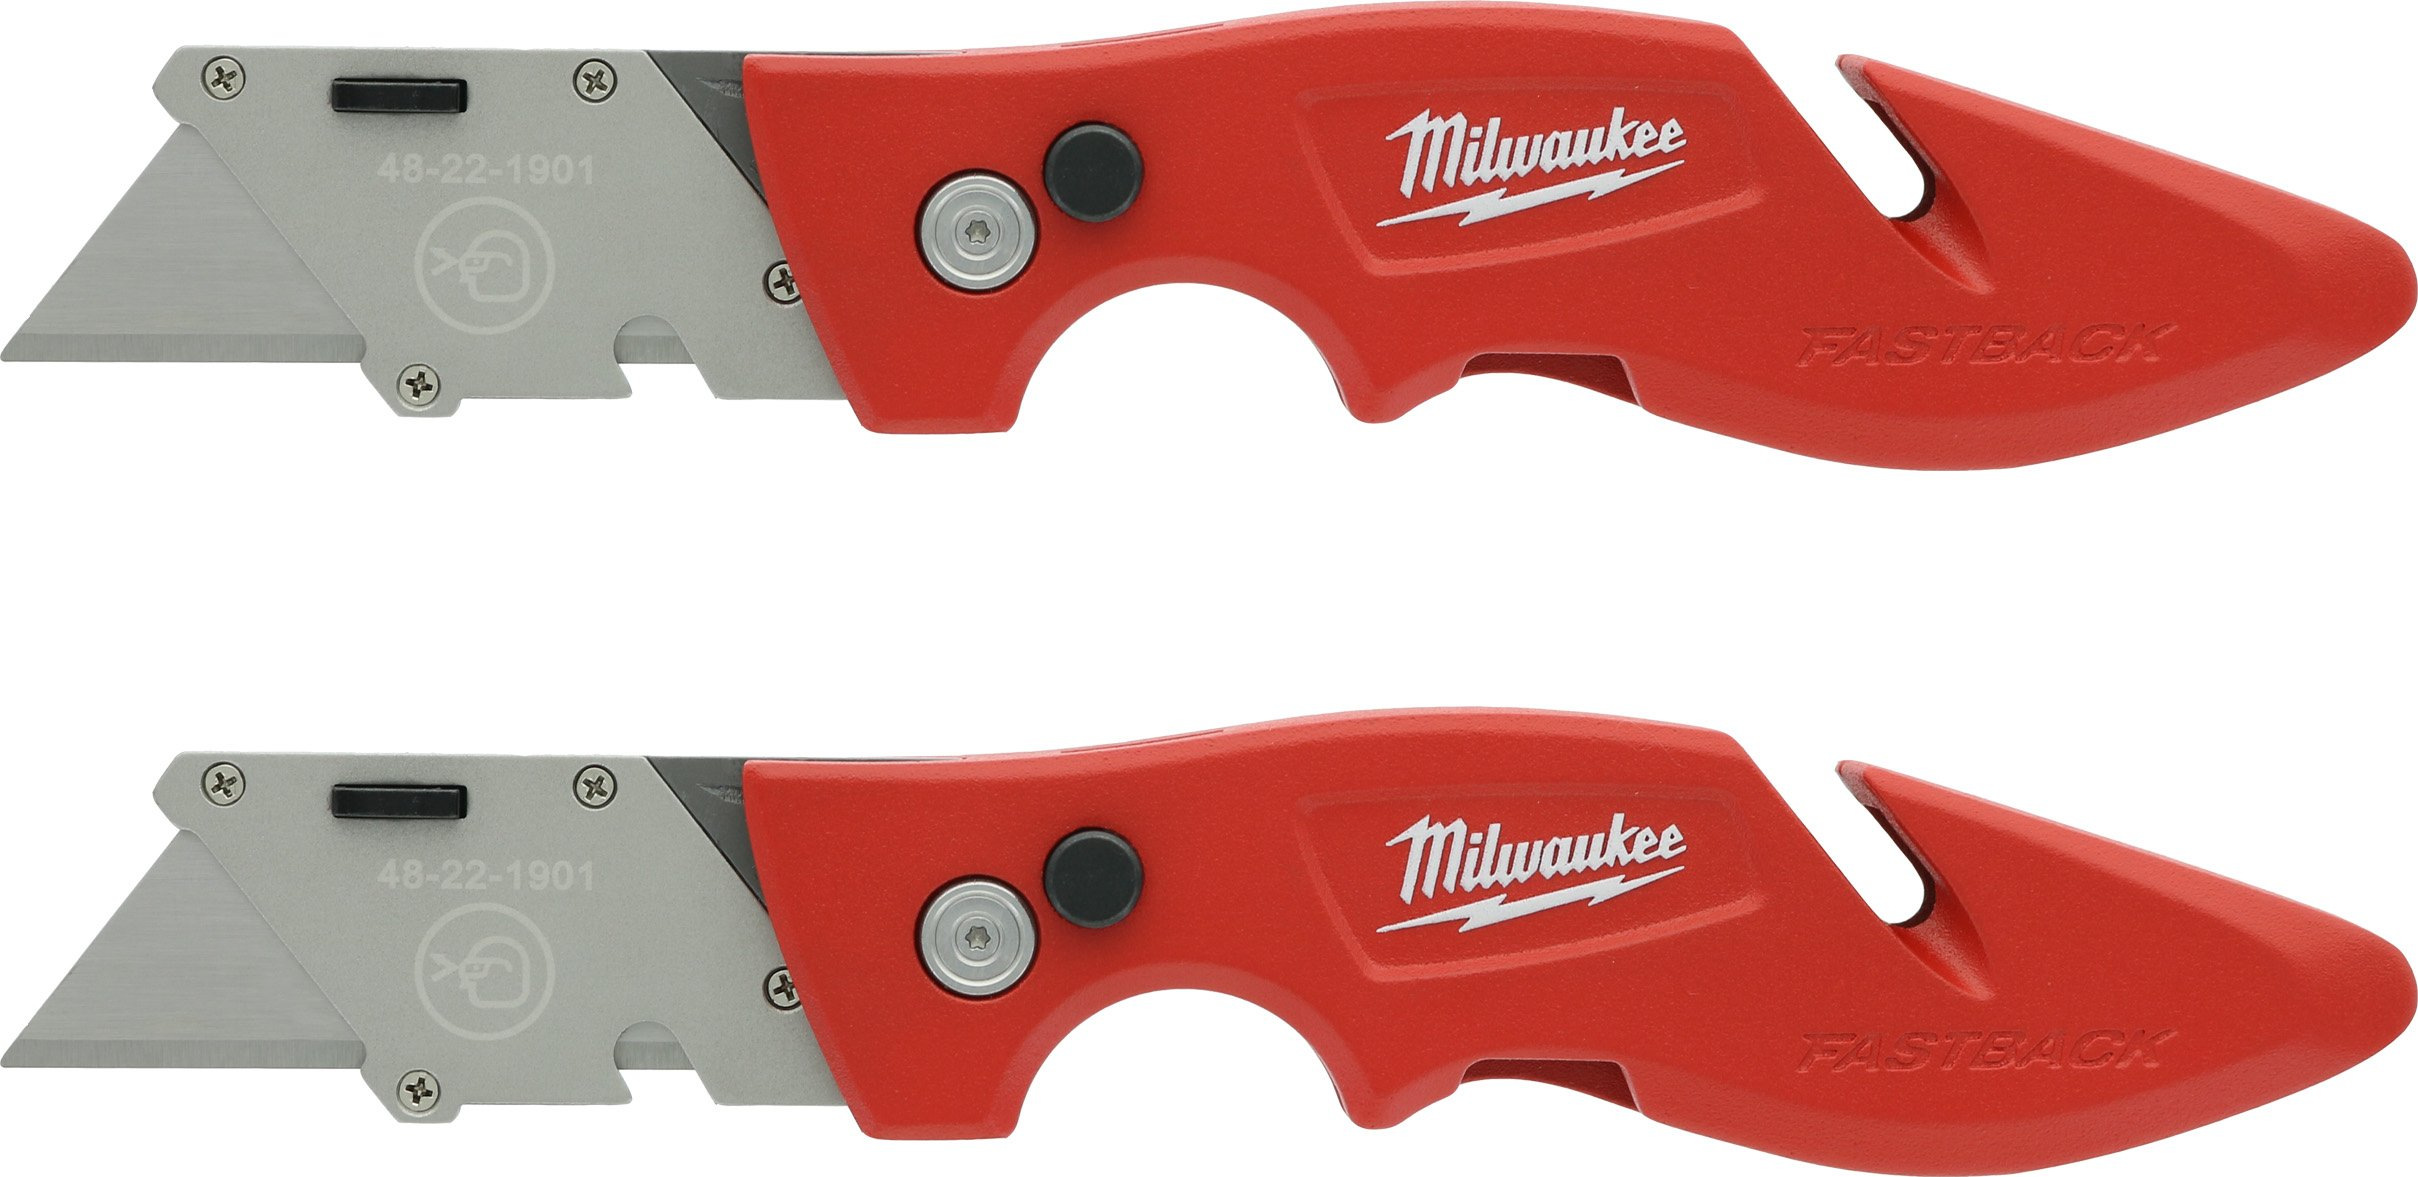 Milwaukee 48-22-1901F Fastback Utility Knife with 4 Blade Storage, Wire Stripping Compartment, and Gut Hook (2 Pack of 48-22-1901)